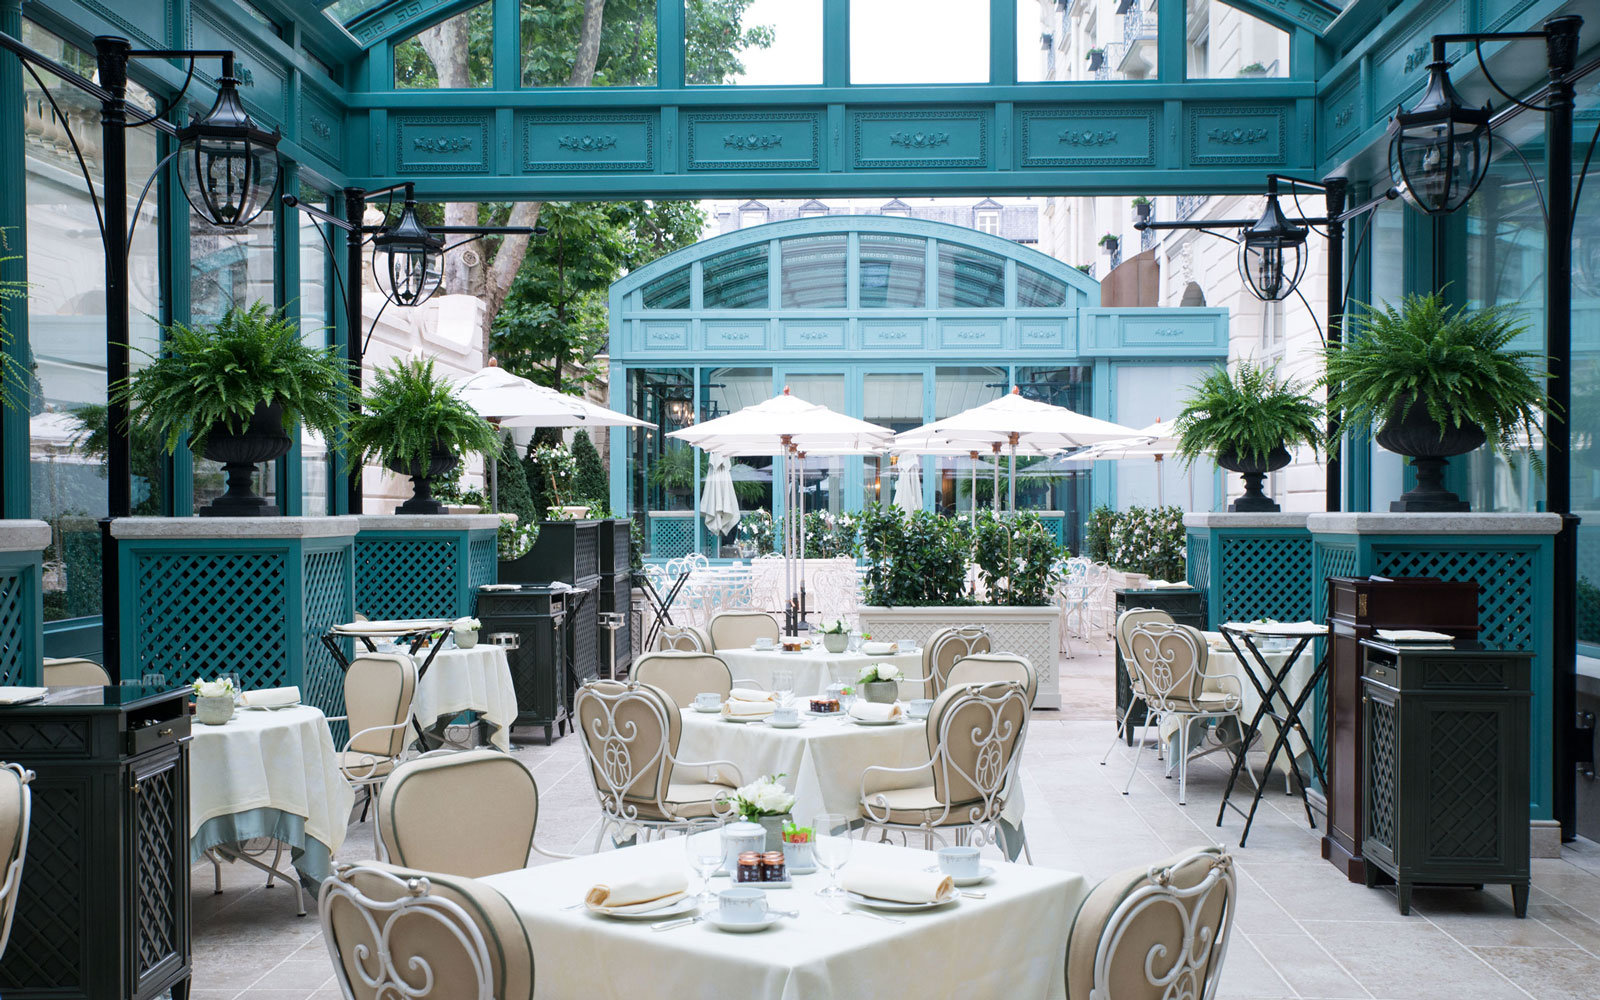 Ritz Paris courtyard